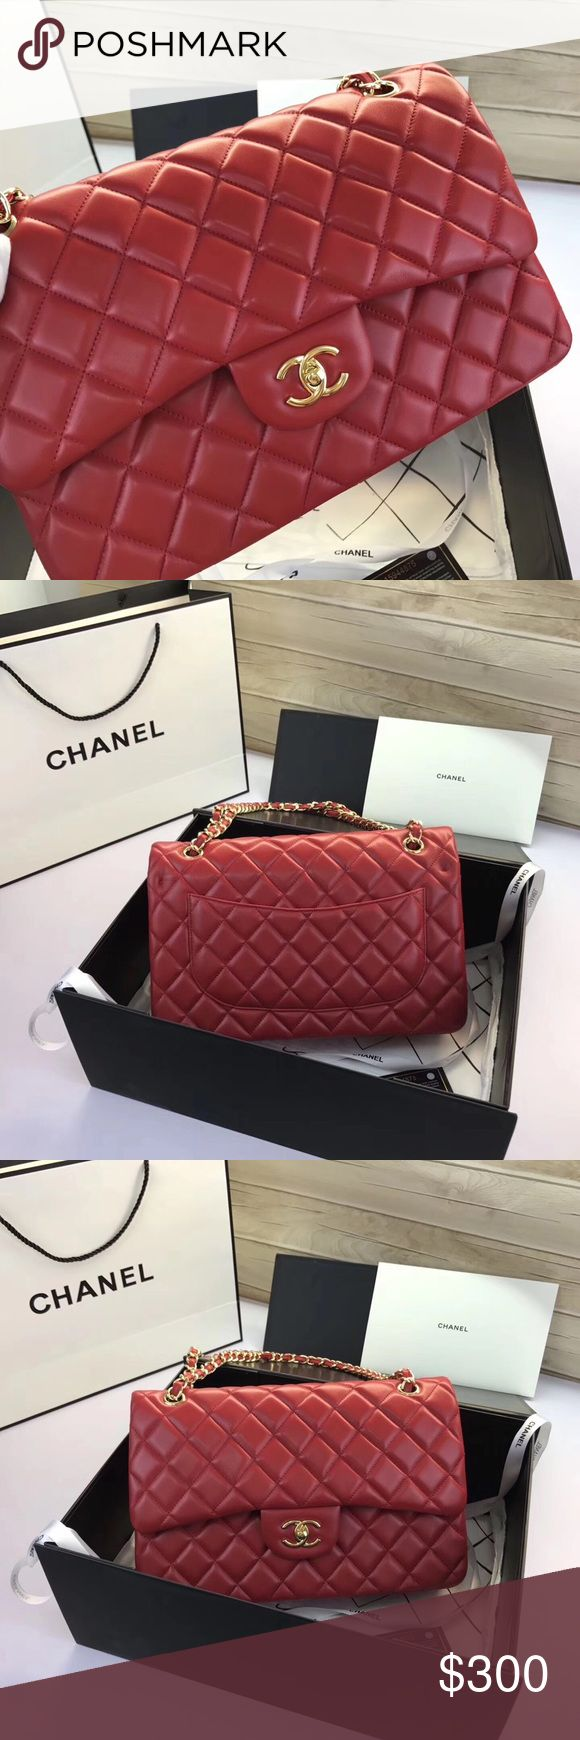 Chanel jumbo flap bag Brand new  Comes with box dust bag and authenticity card  Not authentiiiiiiiic  For serious inquiries or to purchase contact me  Oliviascloset303@gmail.com CHANEL Bags